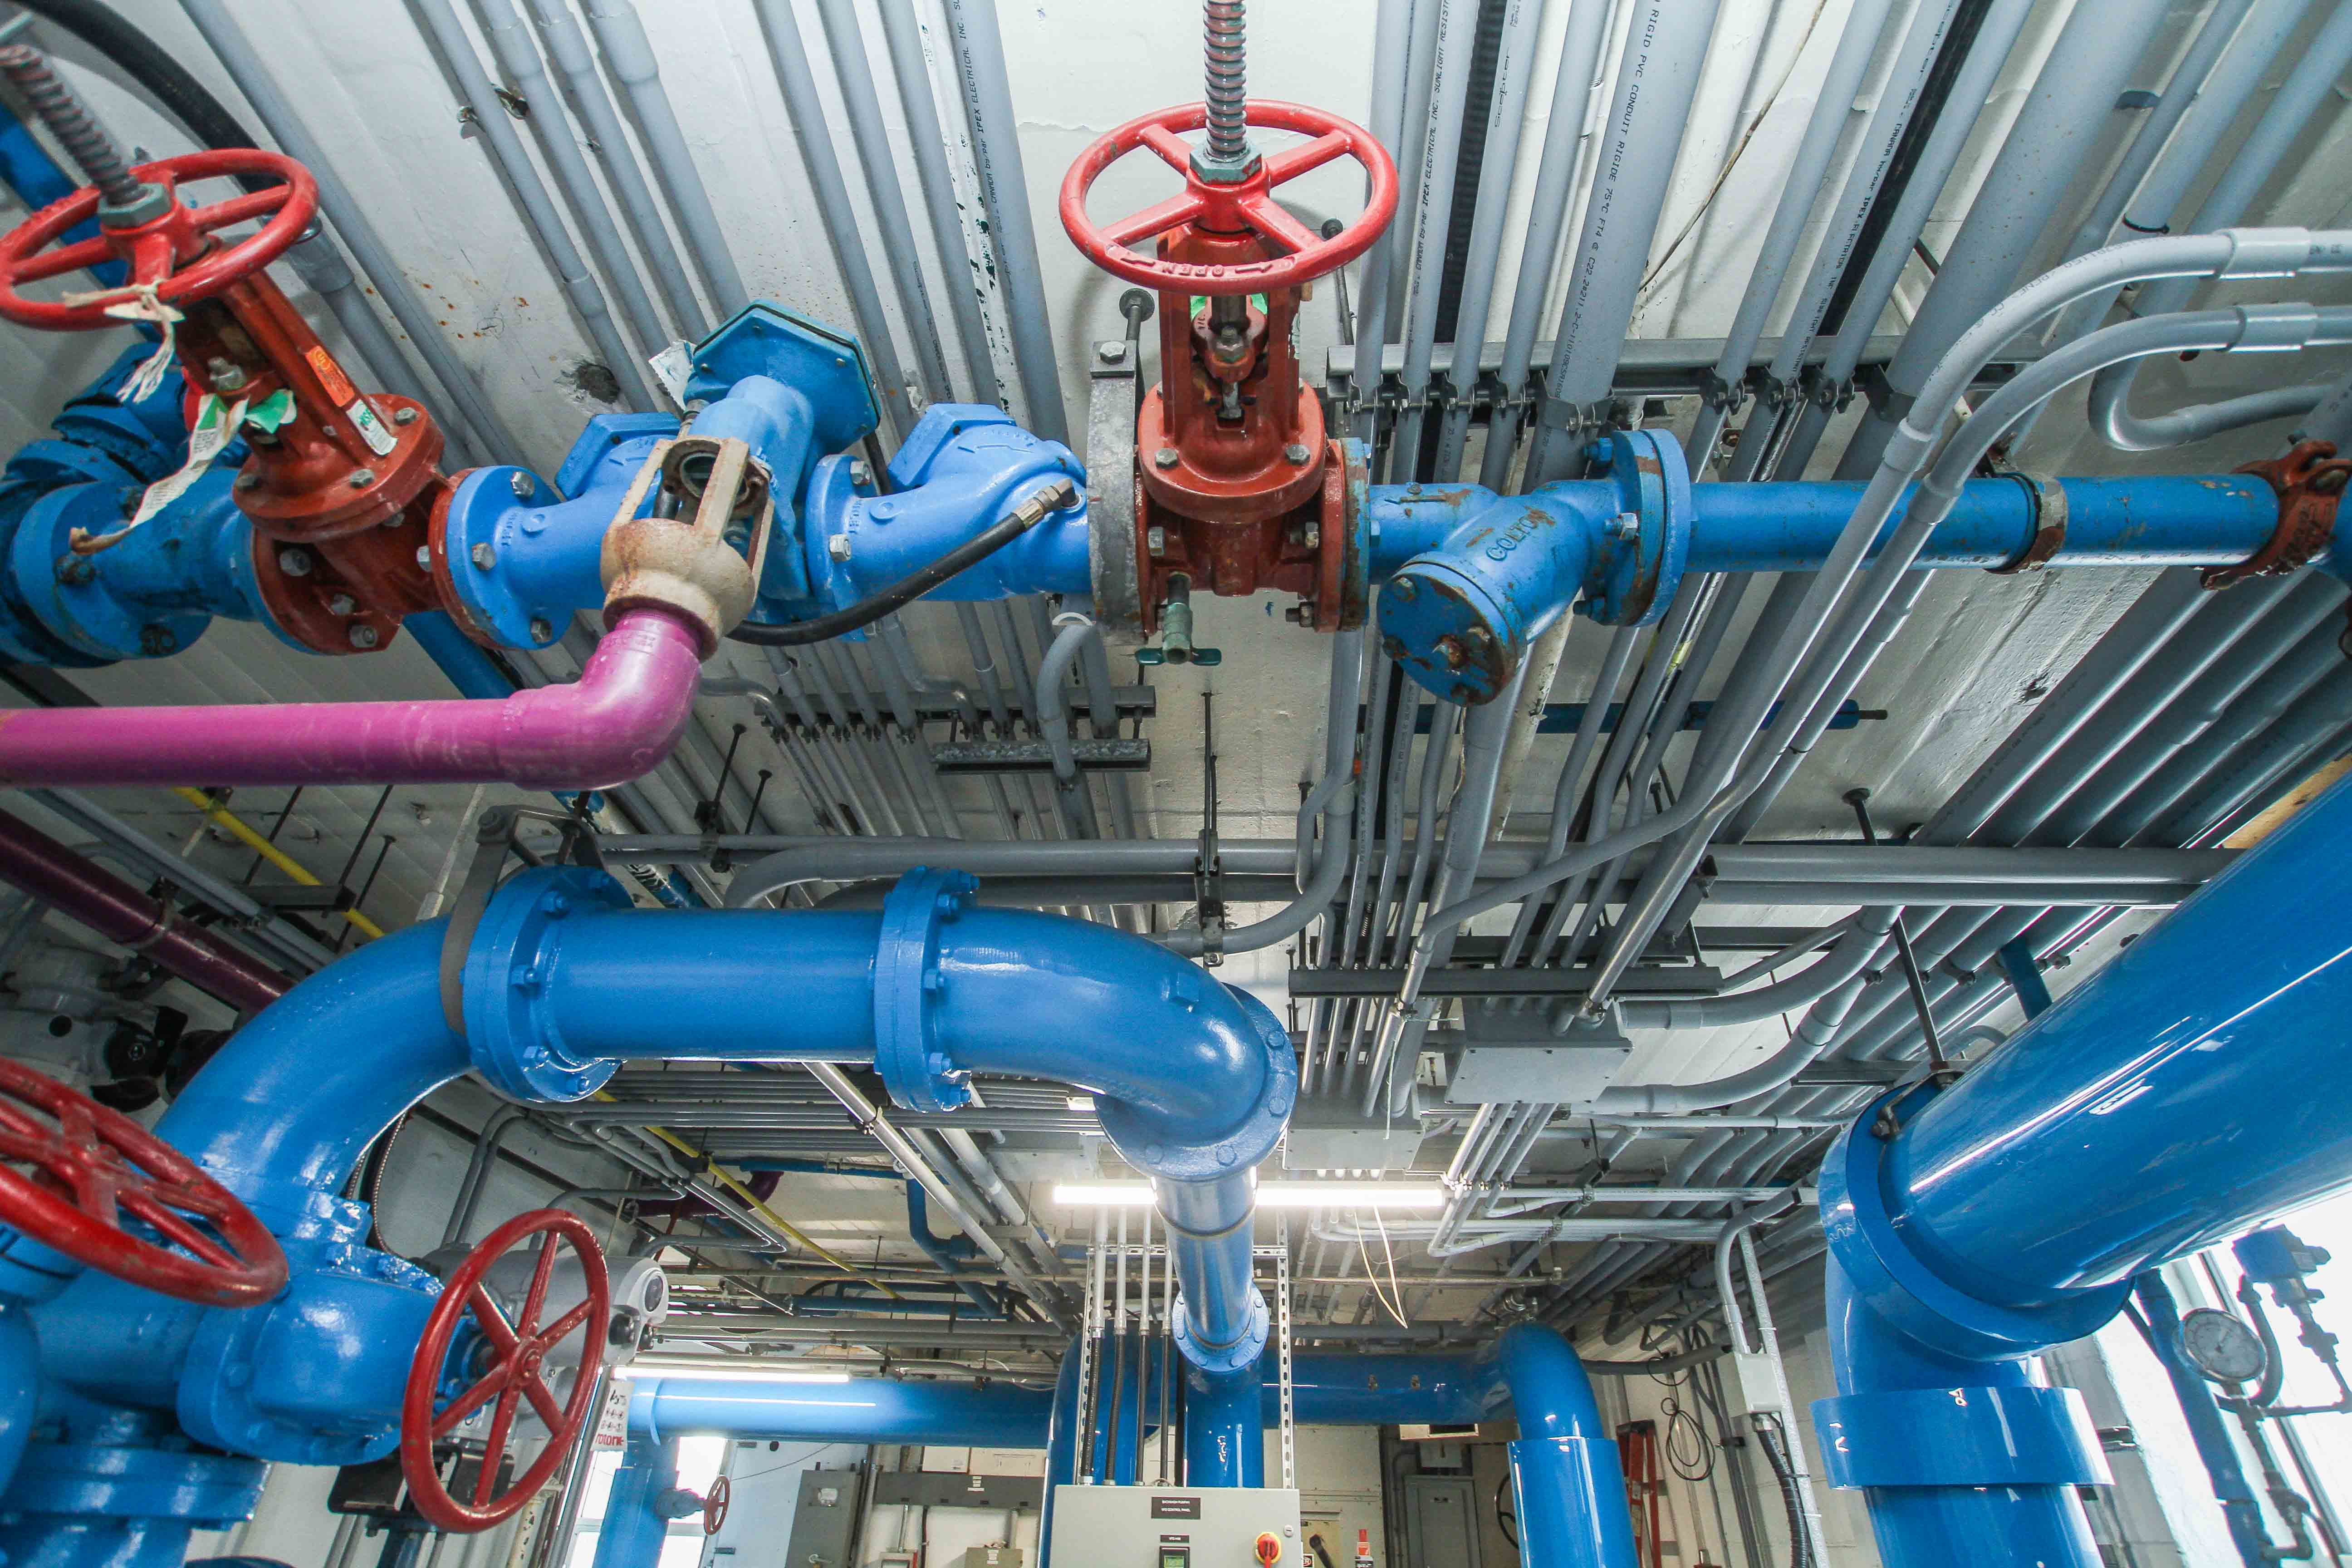 Photo of blue pipes with red valve on ceiling